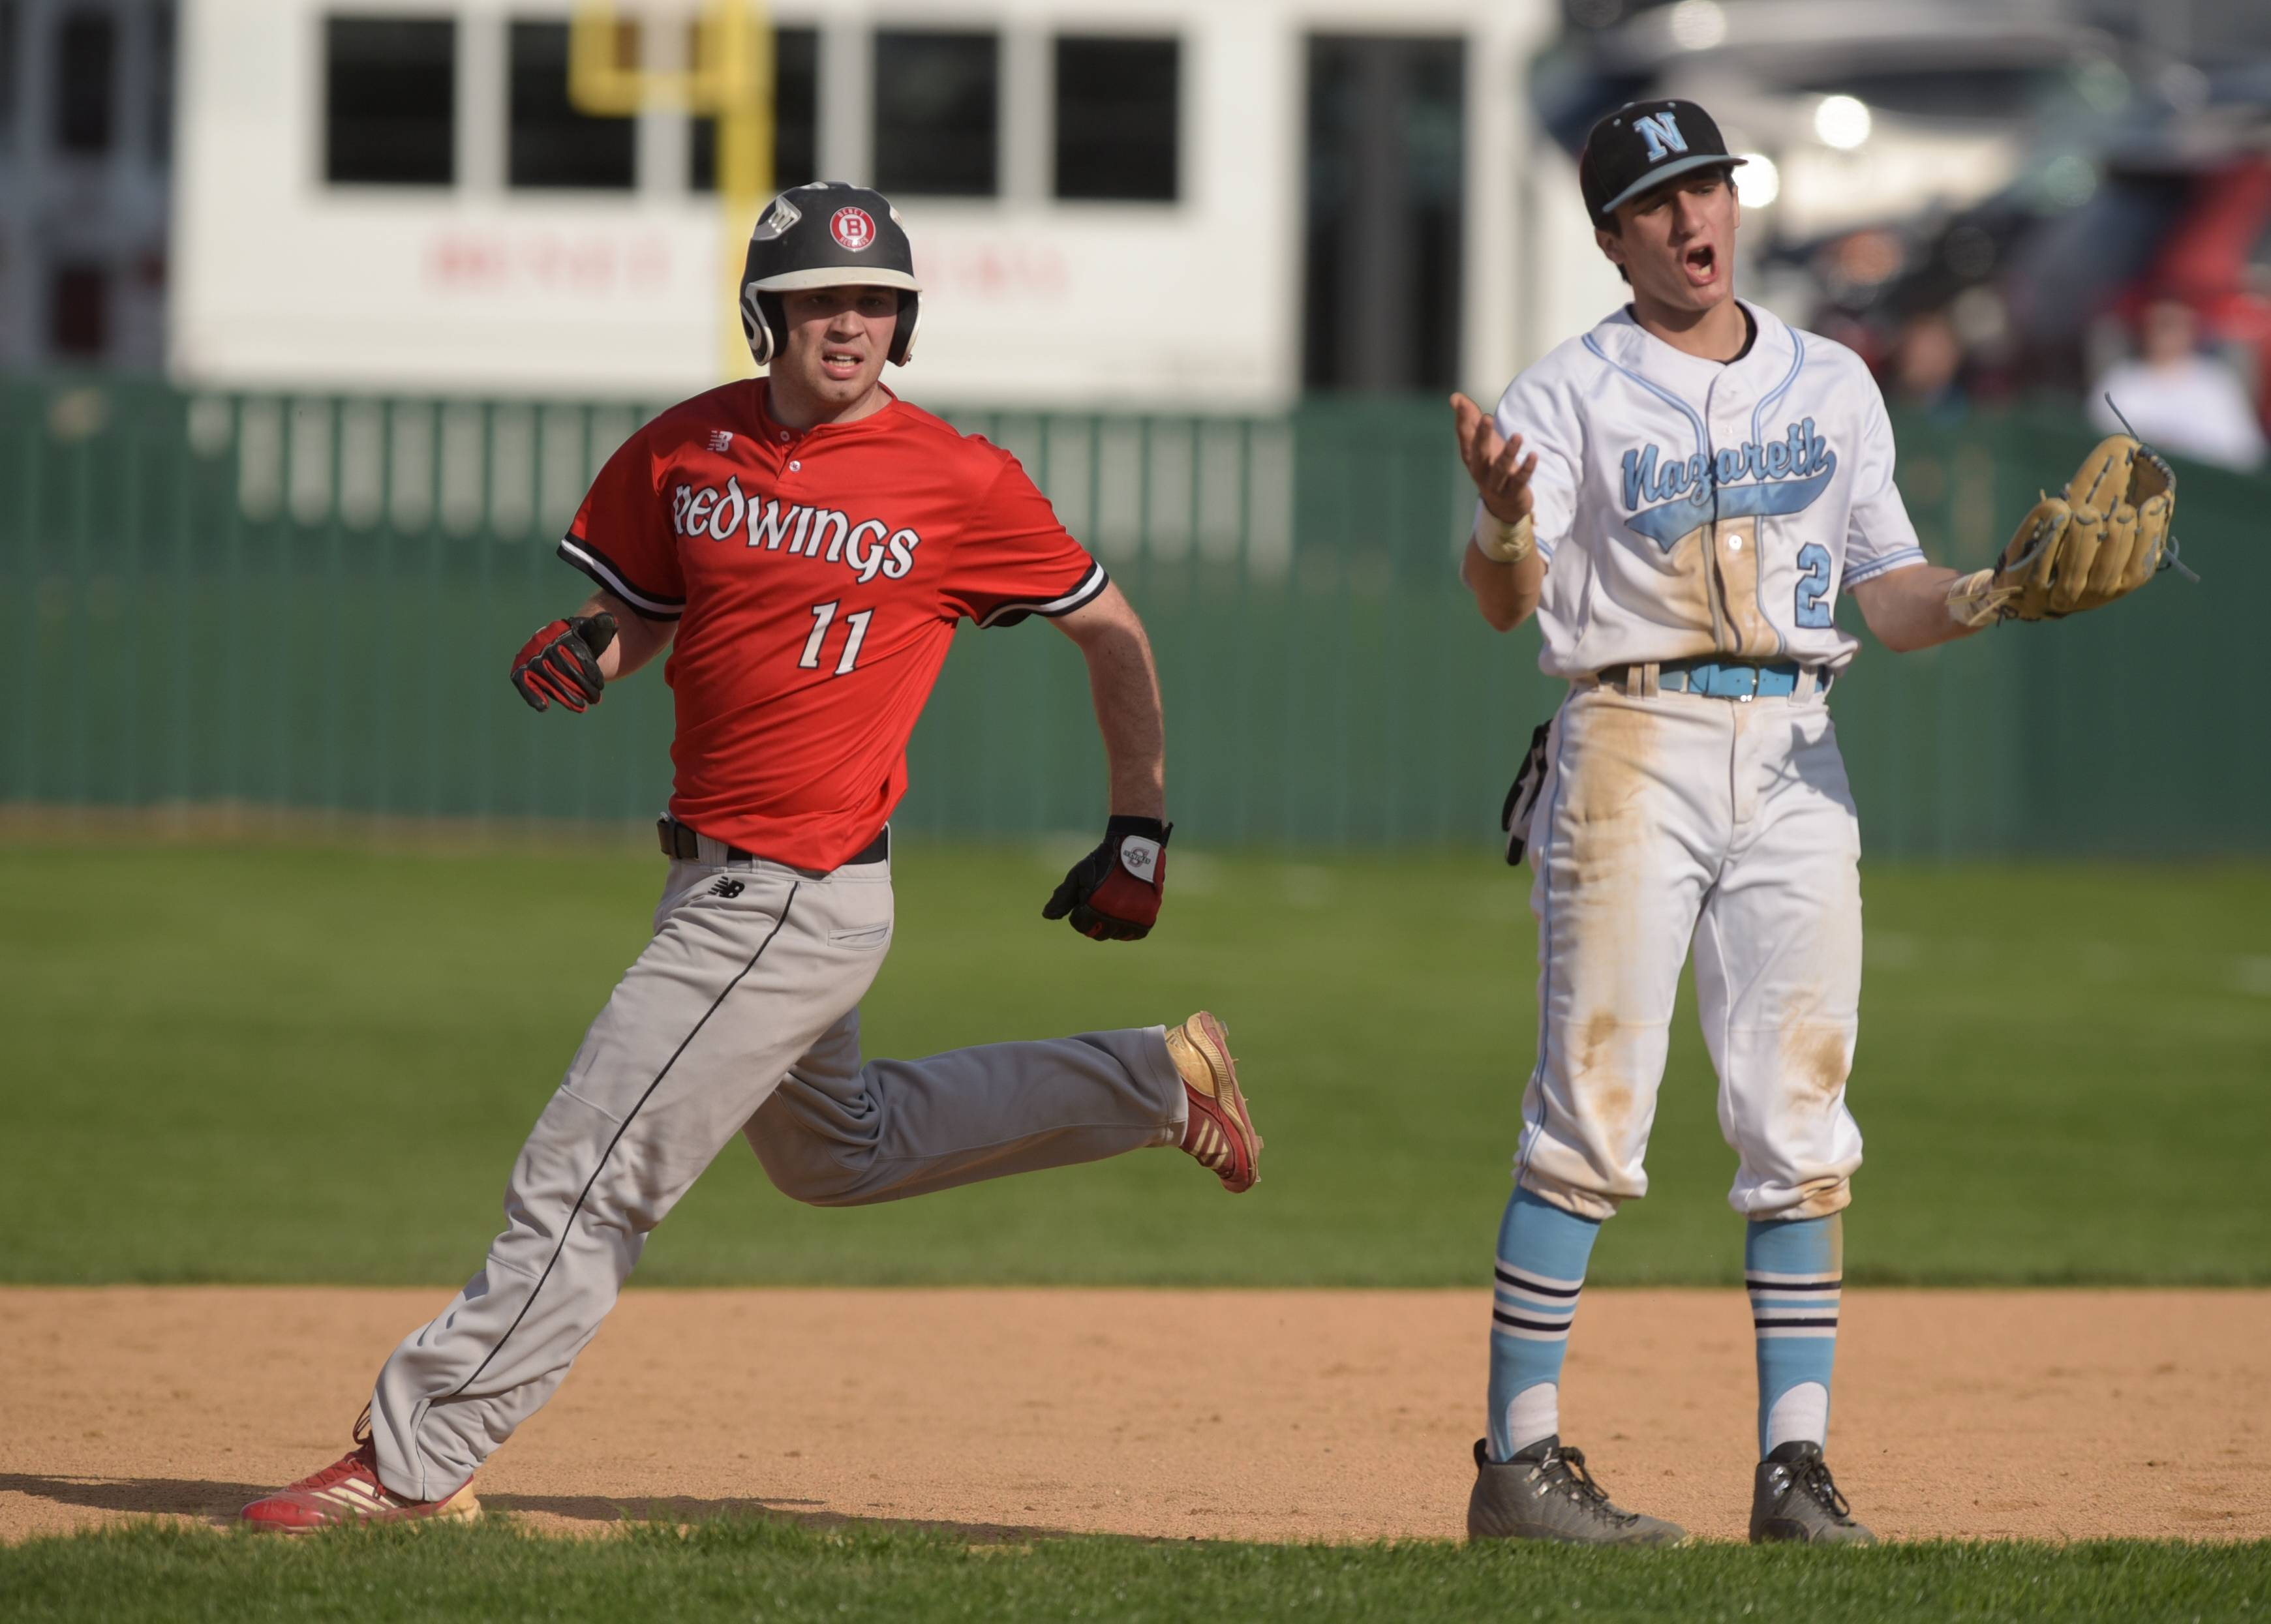 Benet Academy's Mike Dunn looks toward home plate as Nazareth's Dominic Milano reacts to a running scoring while  he was involved in a run down with Dunn between first and second, during varsity baseball in Lisle, April 18, 2017.